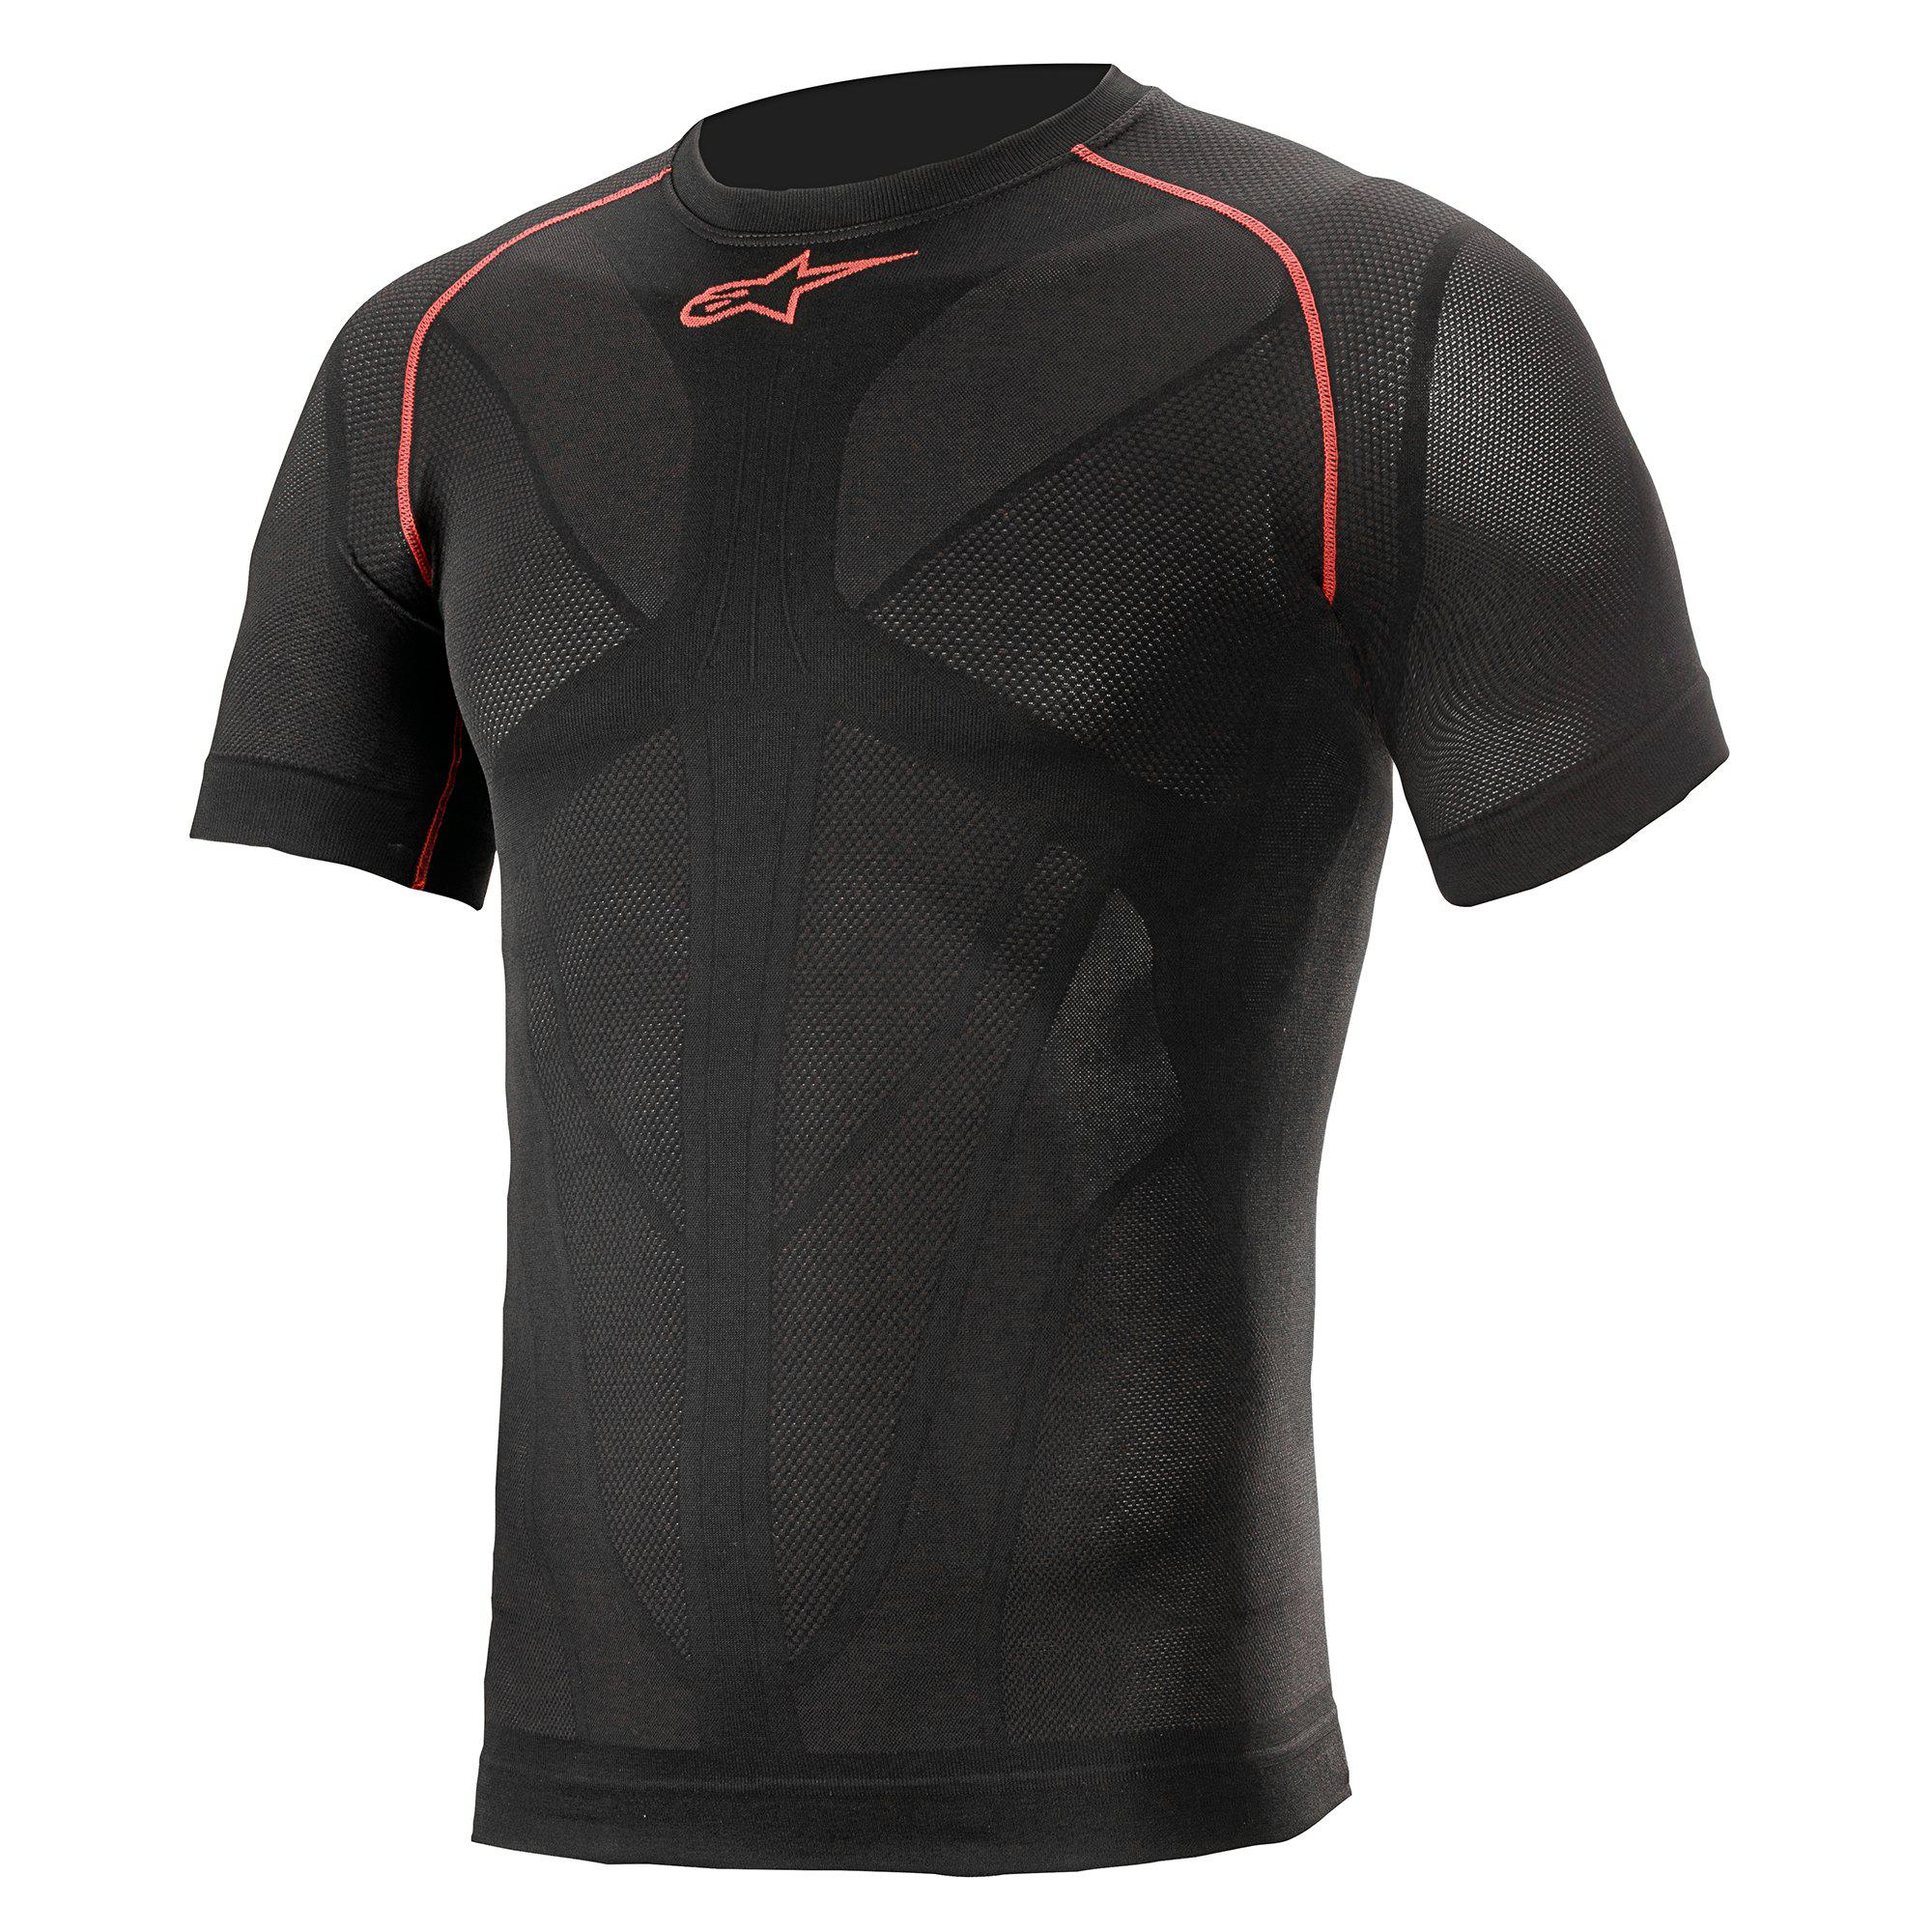 2021 Ride Tech V2 Summer Short Sleeve Top